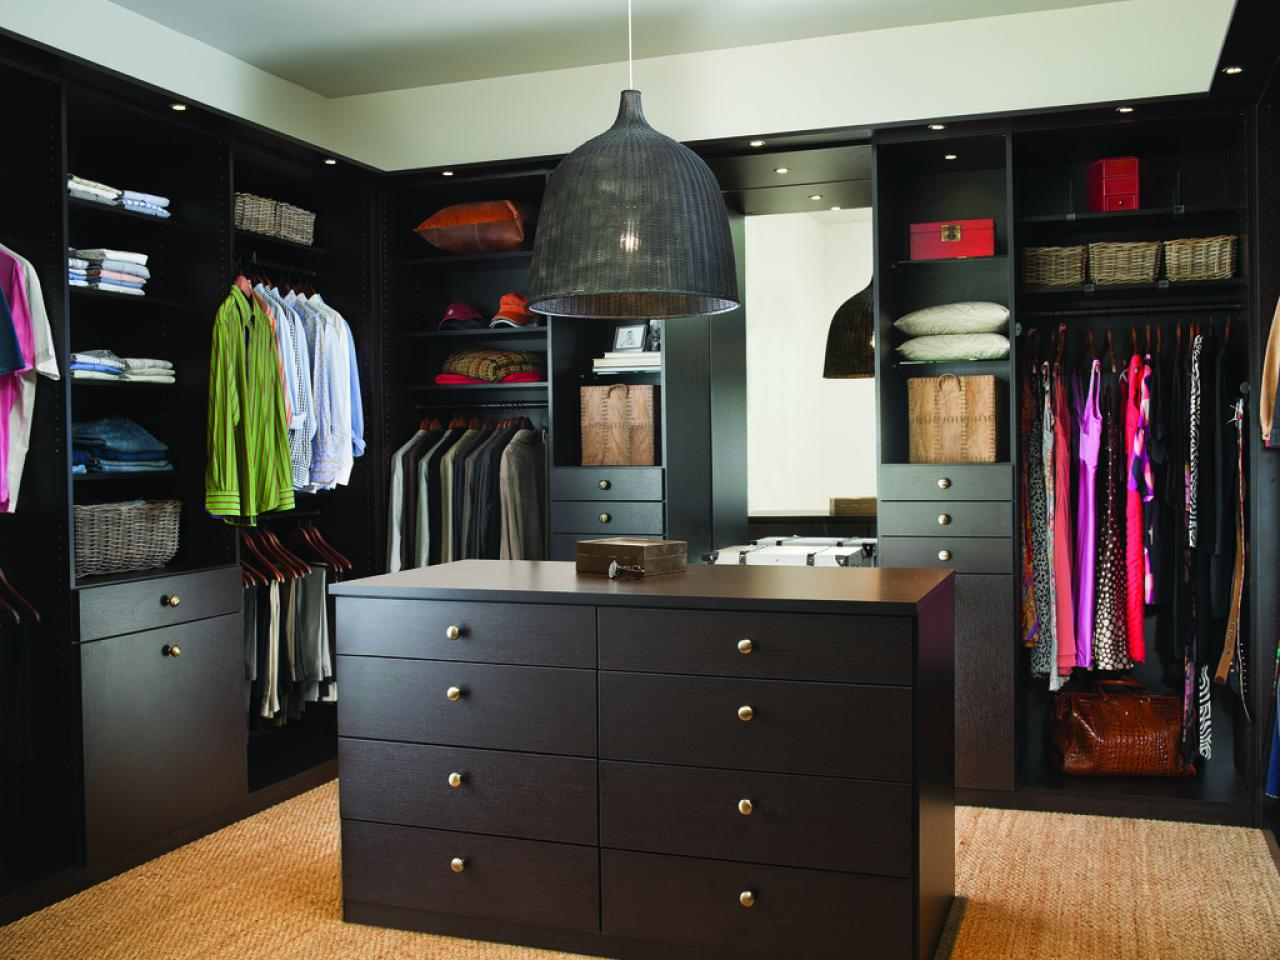 Closet organization accessories ideas and options hgtv for Walk in closet remodel